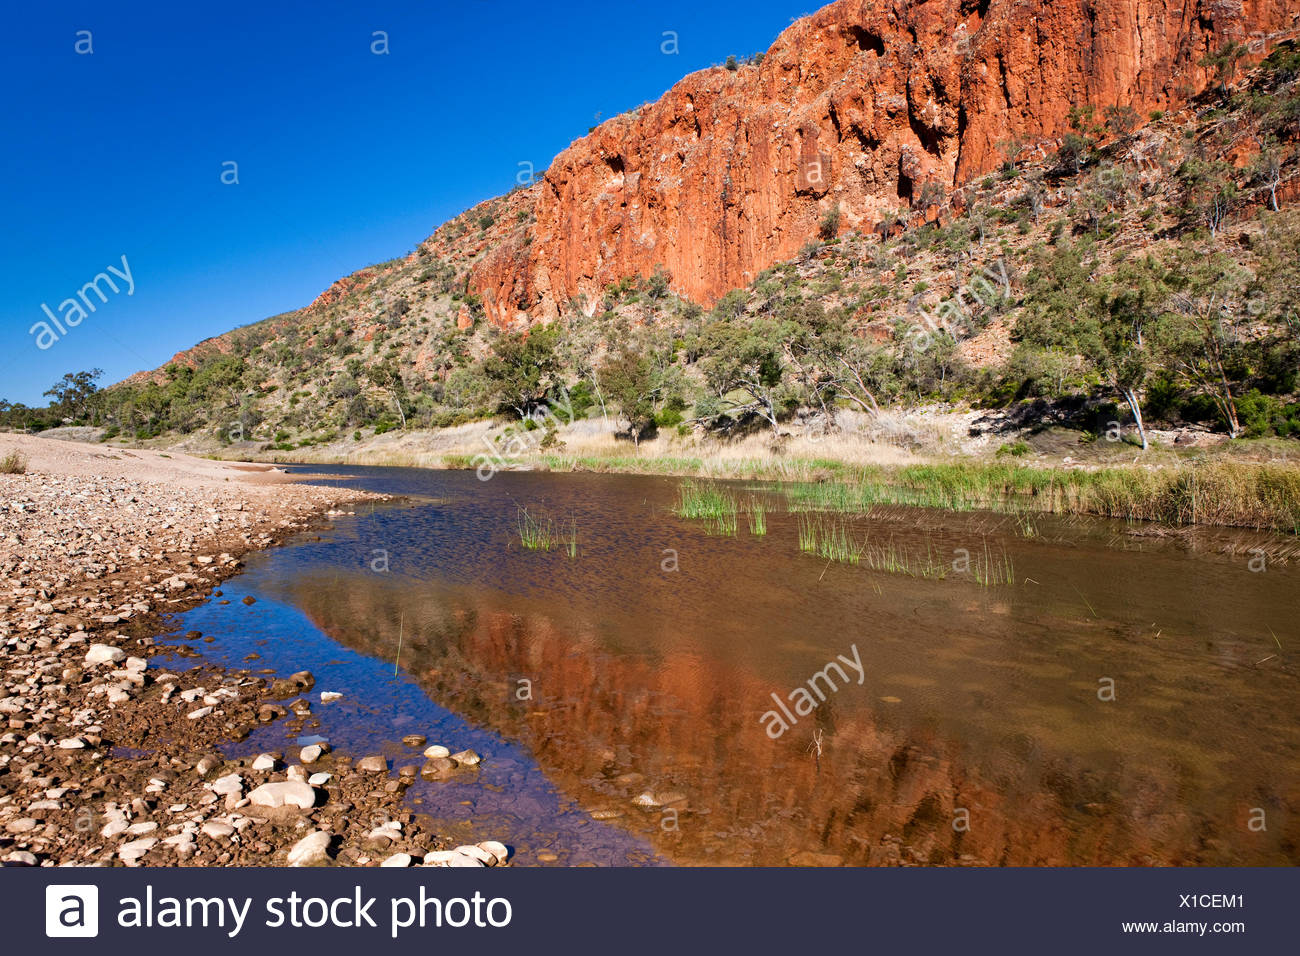 Glen Helen Gorge in West MacDonnell National Park, Northern Territory, Australia - Stock Image